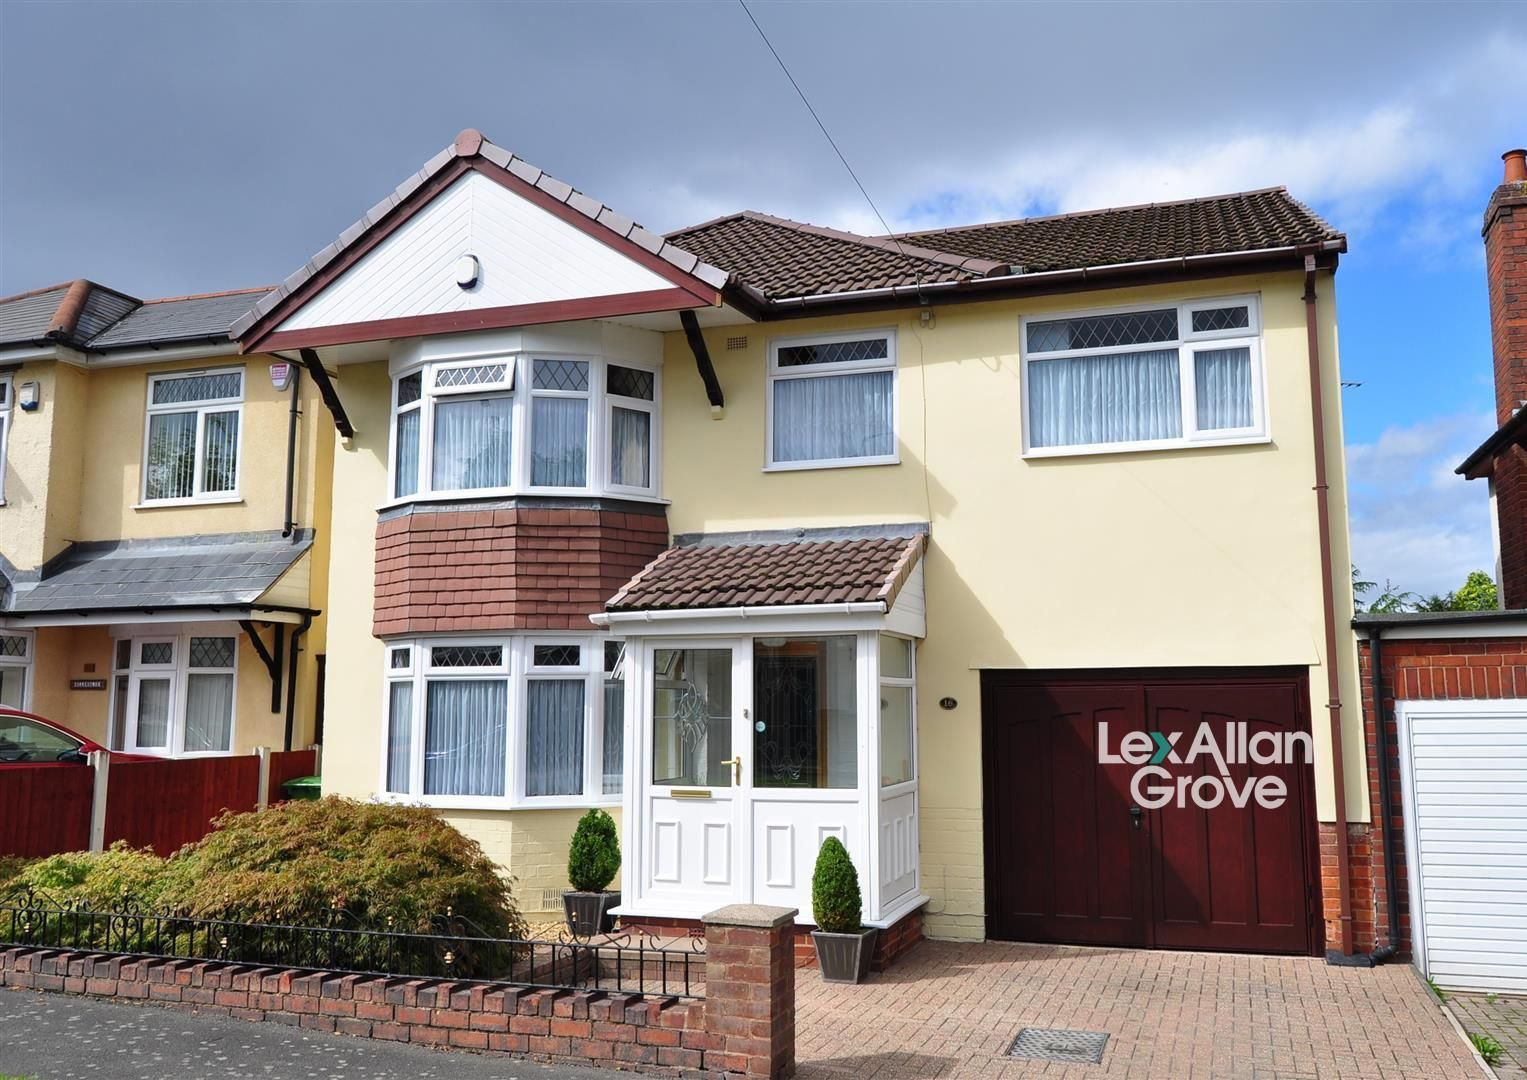 3 bed detached for sale, B62